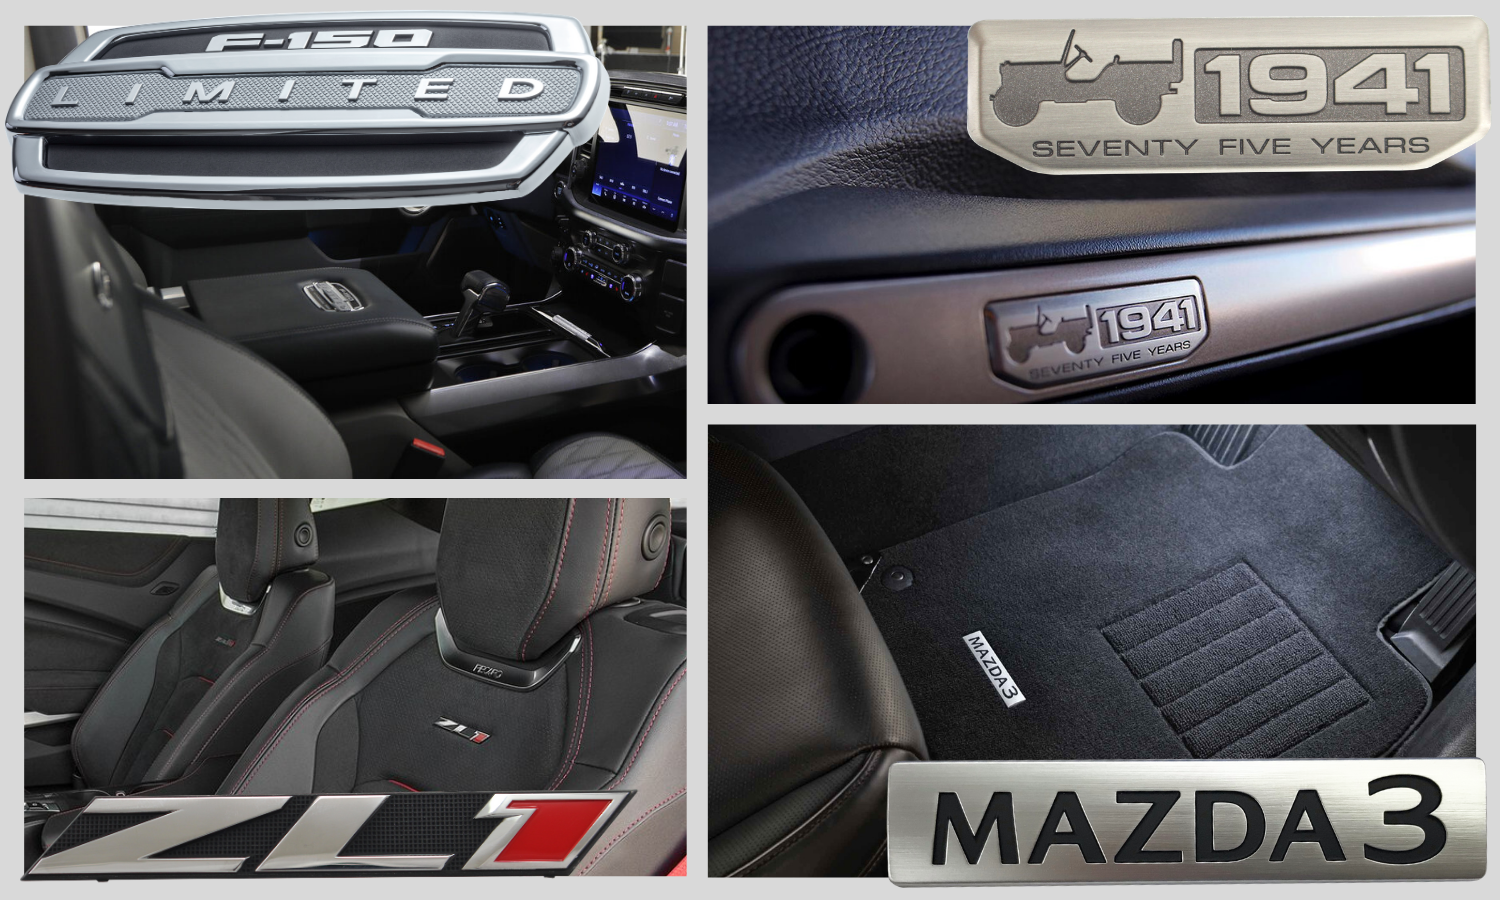 picture split into quadrants. upper left quadrant has Ford F150 chrome and black badge used on the armrest console. Bottom left quadrant has Chevy ZL1 black, chrome, and red model trim name plate shown on a seatback. Upper right quadrant has an antiqued pewter Jeep 1941 instrument panel badge shown on the glove box. bottom right quadrant has a brushed chrome and black Mazda metal name plate shown on the floor mat area.